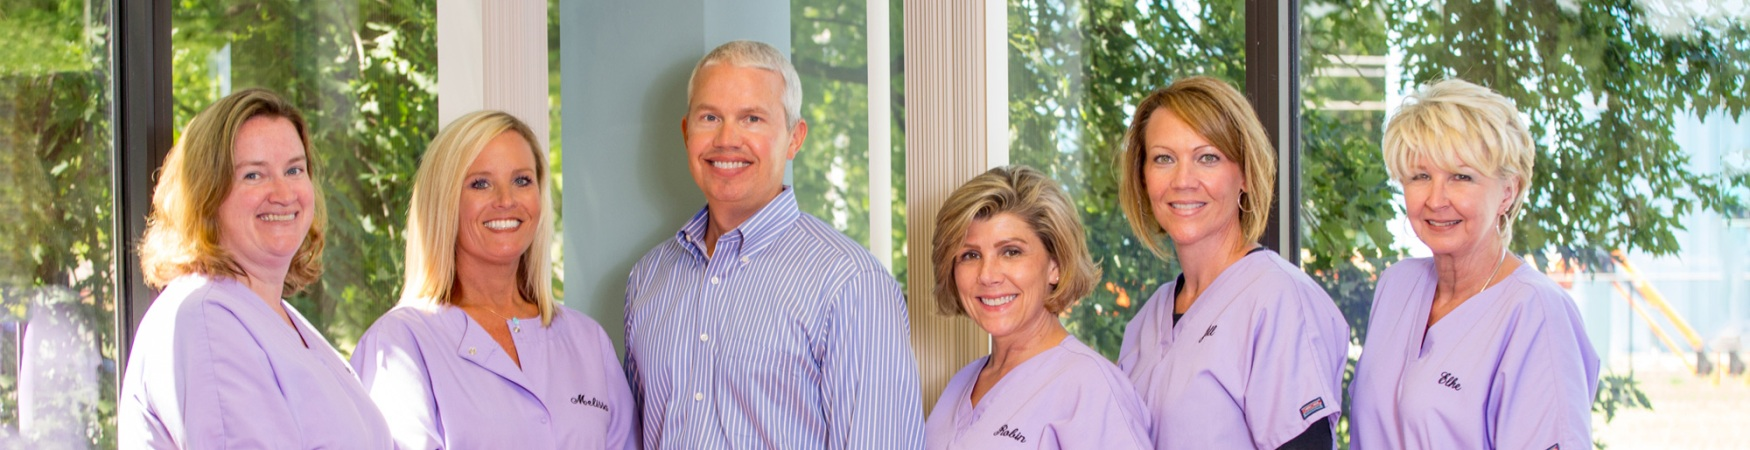 Wright Orthodontics reviews | Dentists at 479 Jumpers Hole Road - Severna Park MD